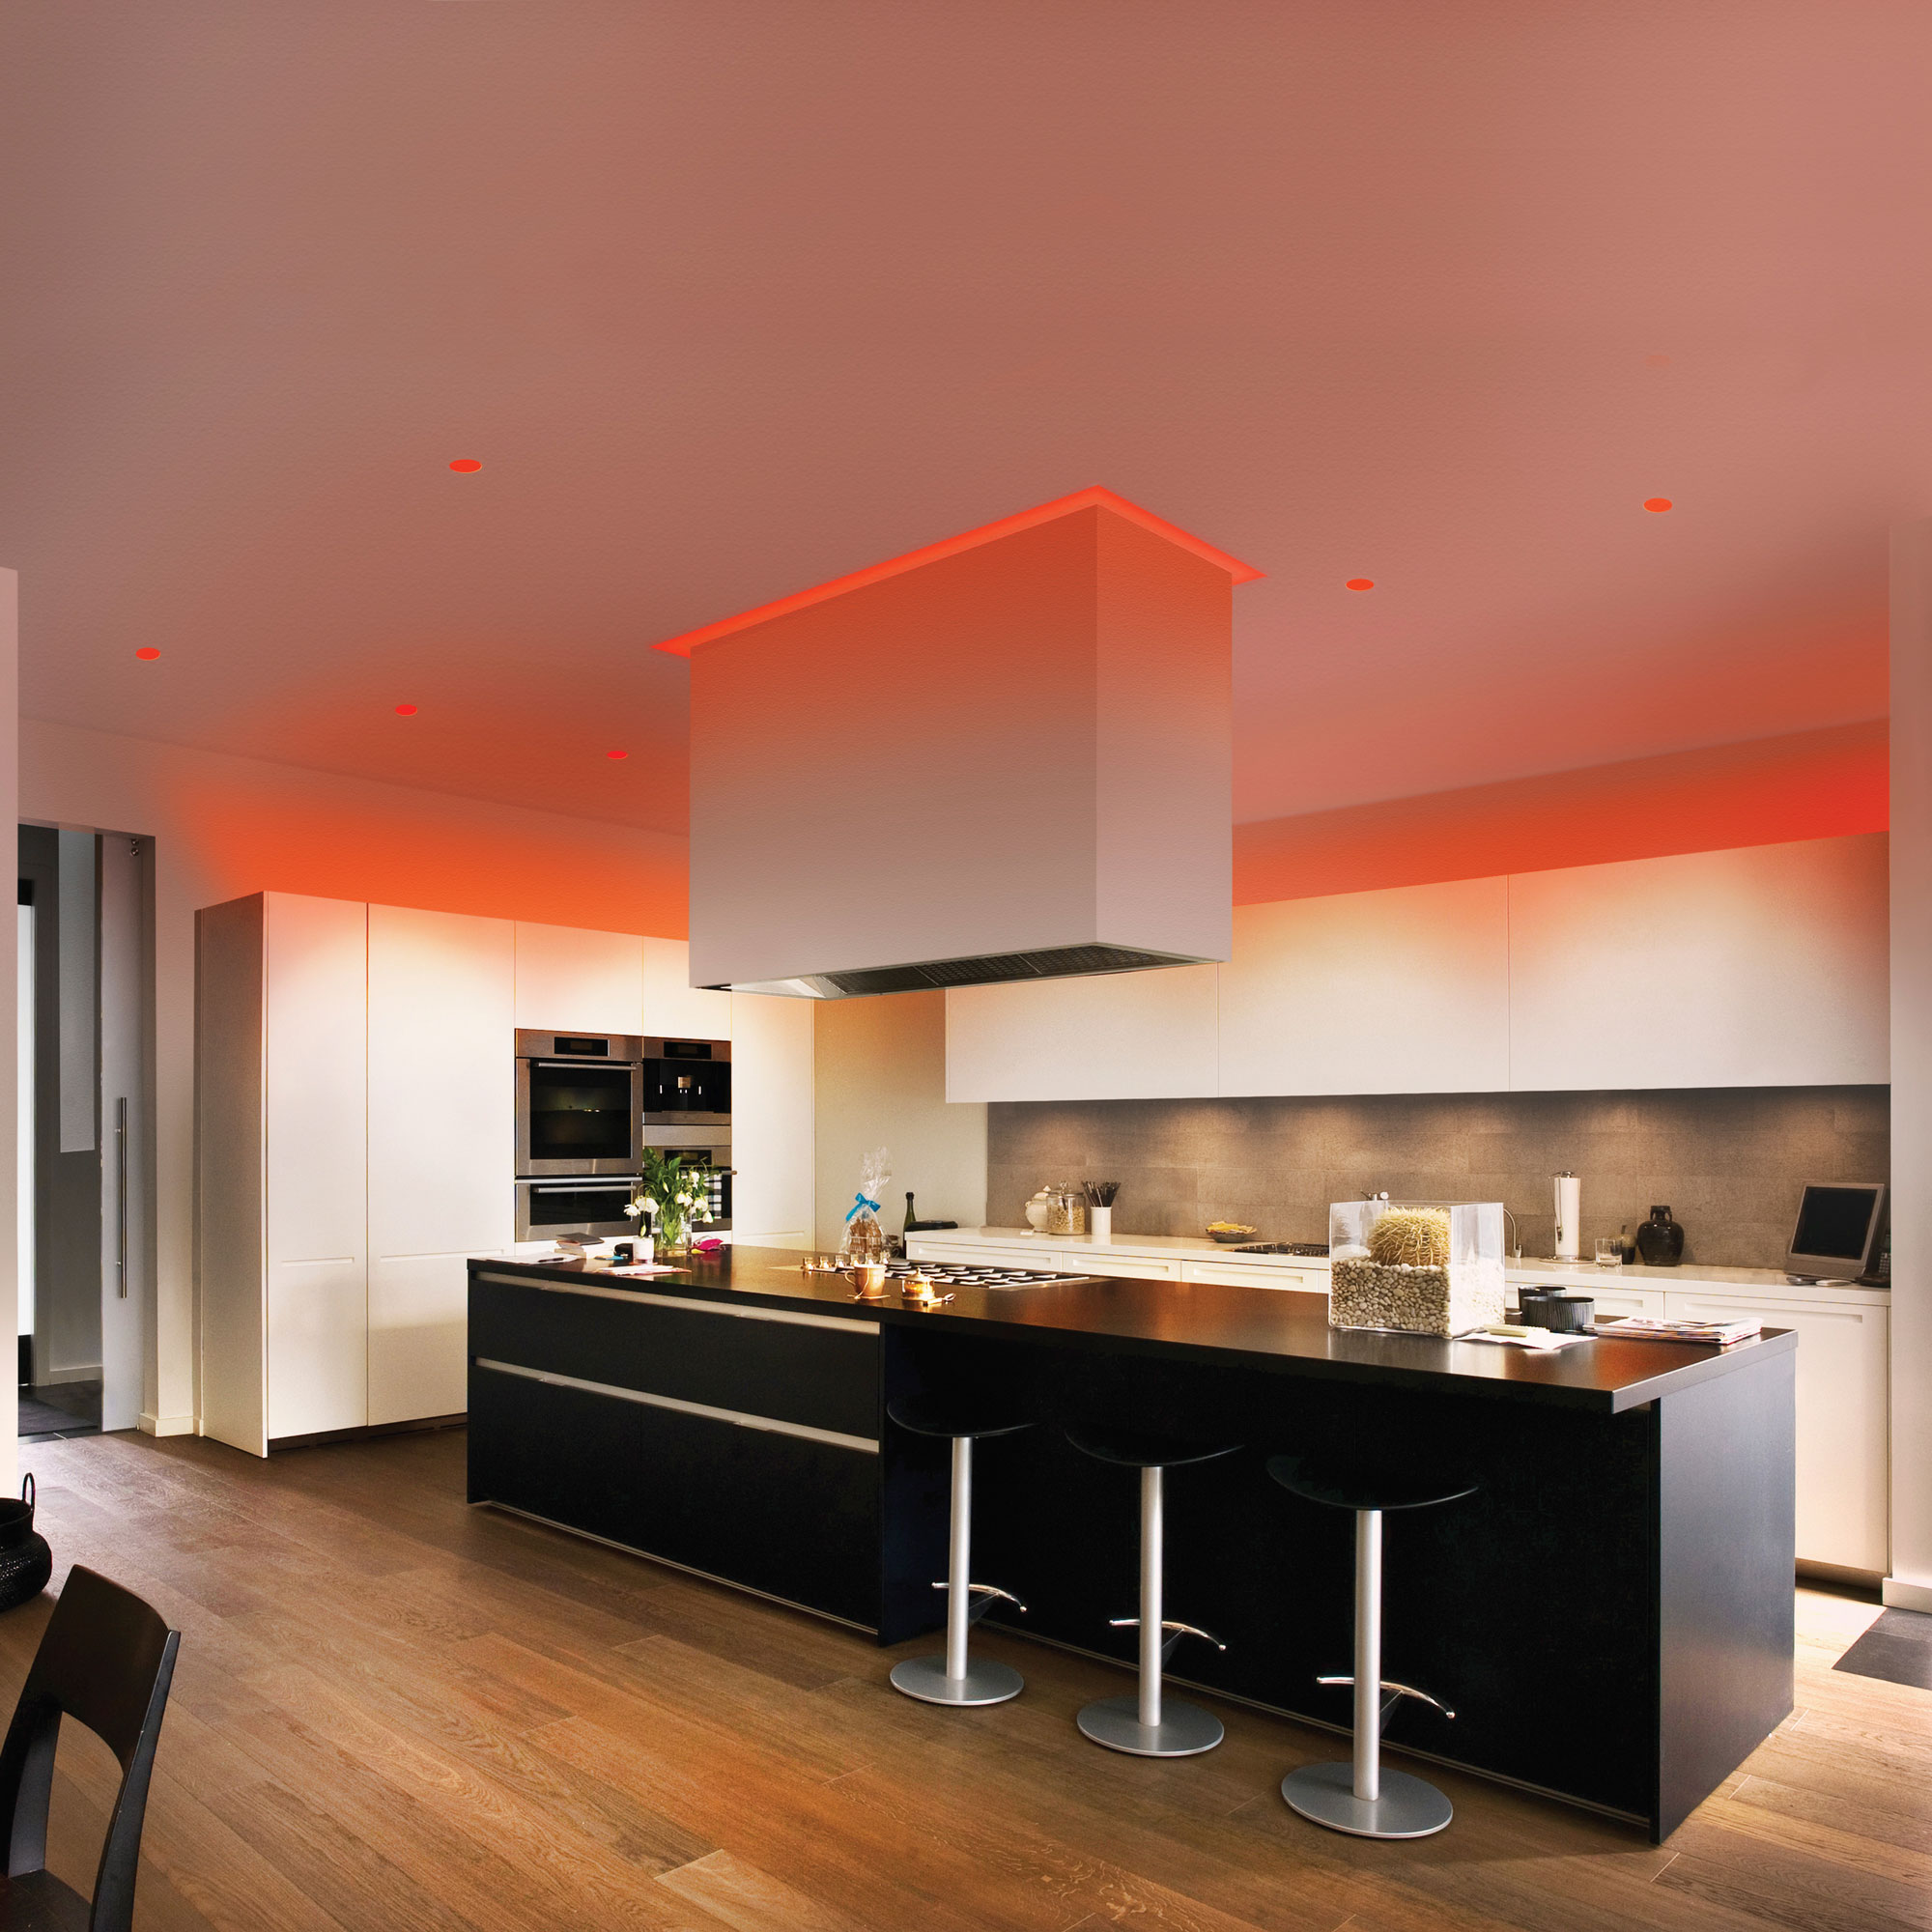 Verge Ceiling RGB 3W 24VDC Plaster In LED System By Pure Lighting VGCE 3WDC